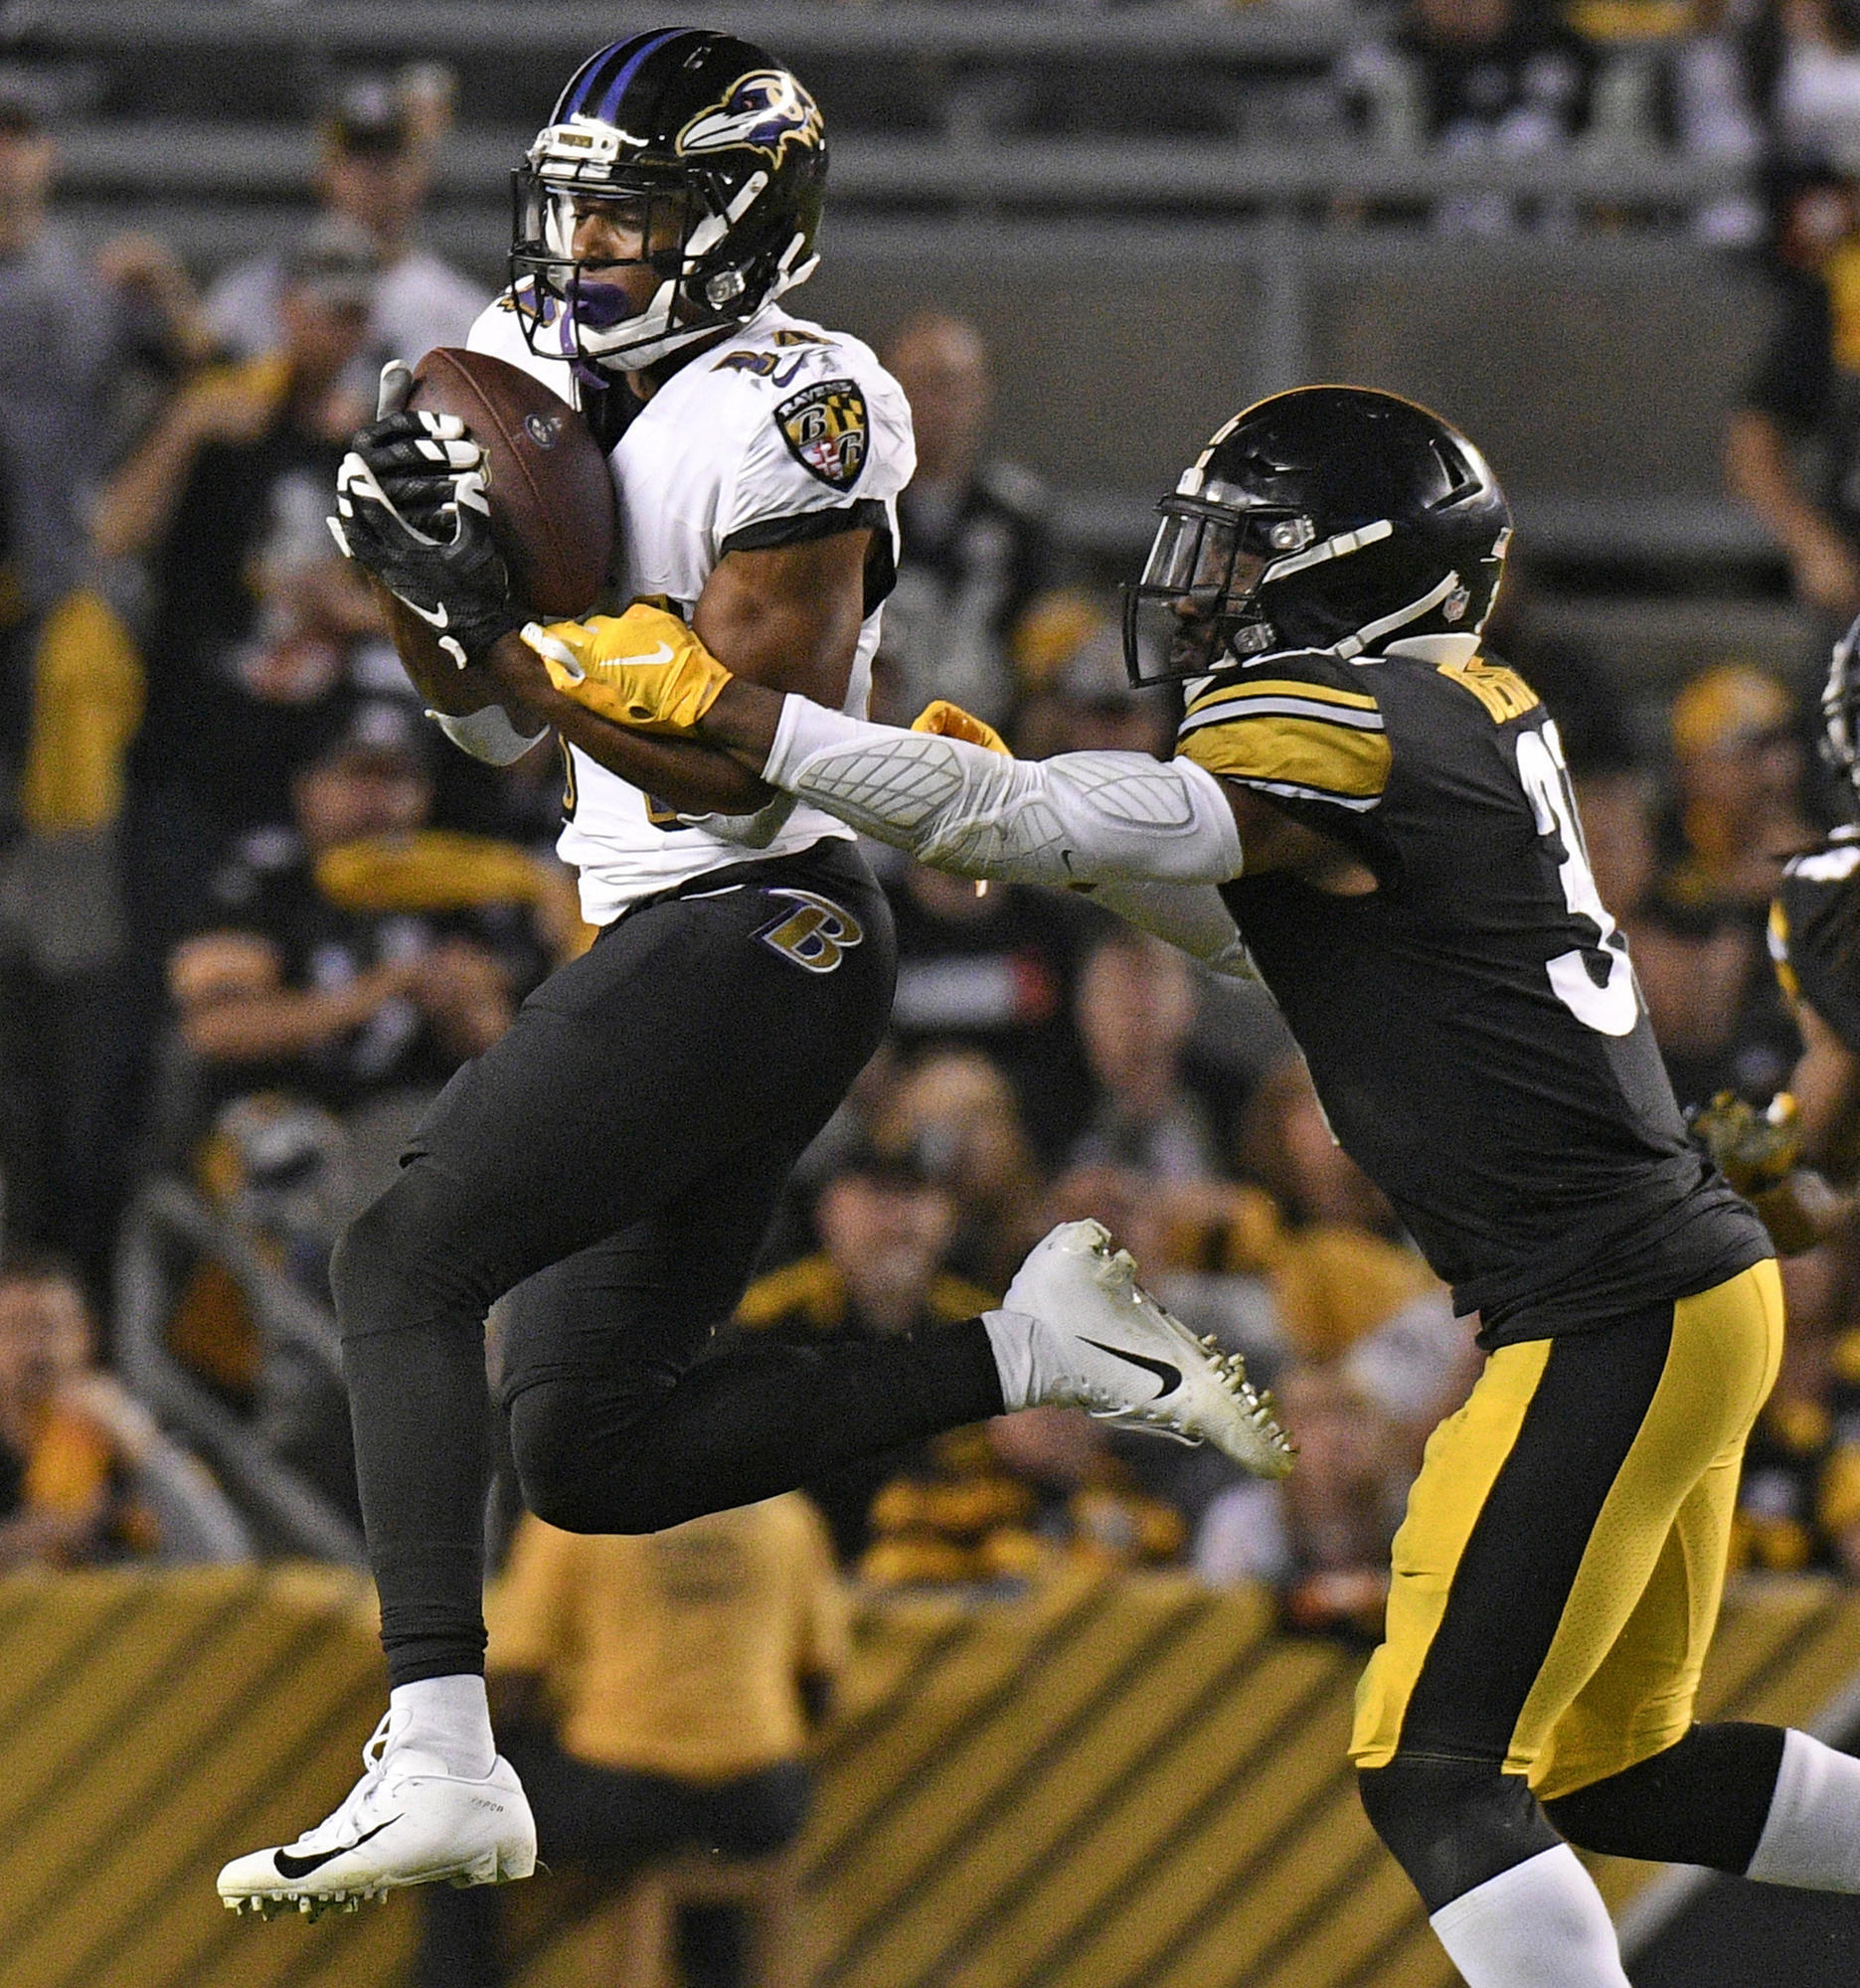 b59c9a88b22 Five Things We Learned from the Ravens  26-14 win over the Pittsburgh  Steelers - Baltimore Sun